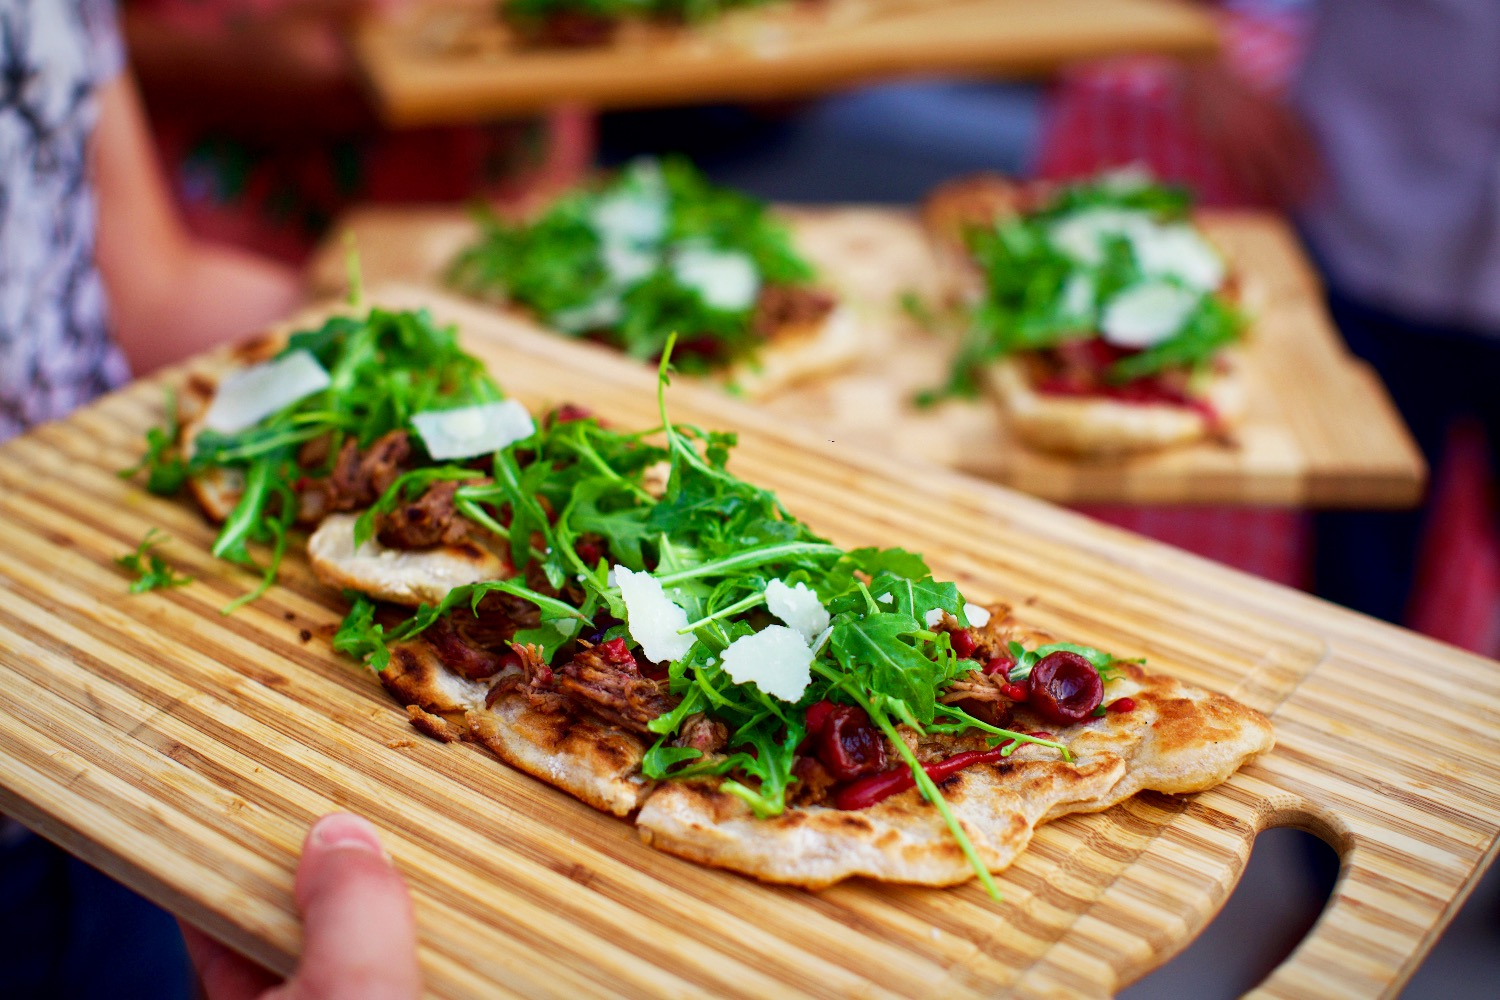 Cherry & Brisket Flatbread